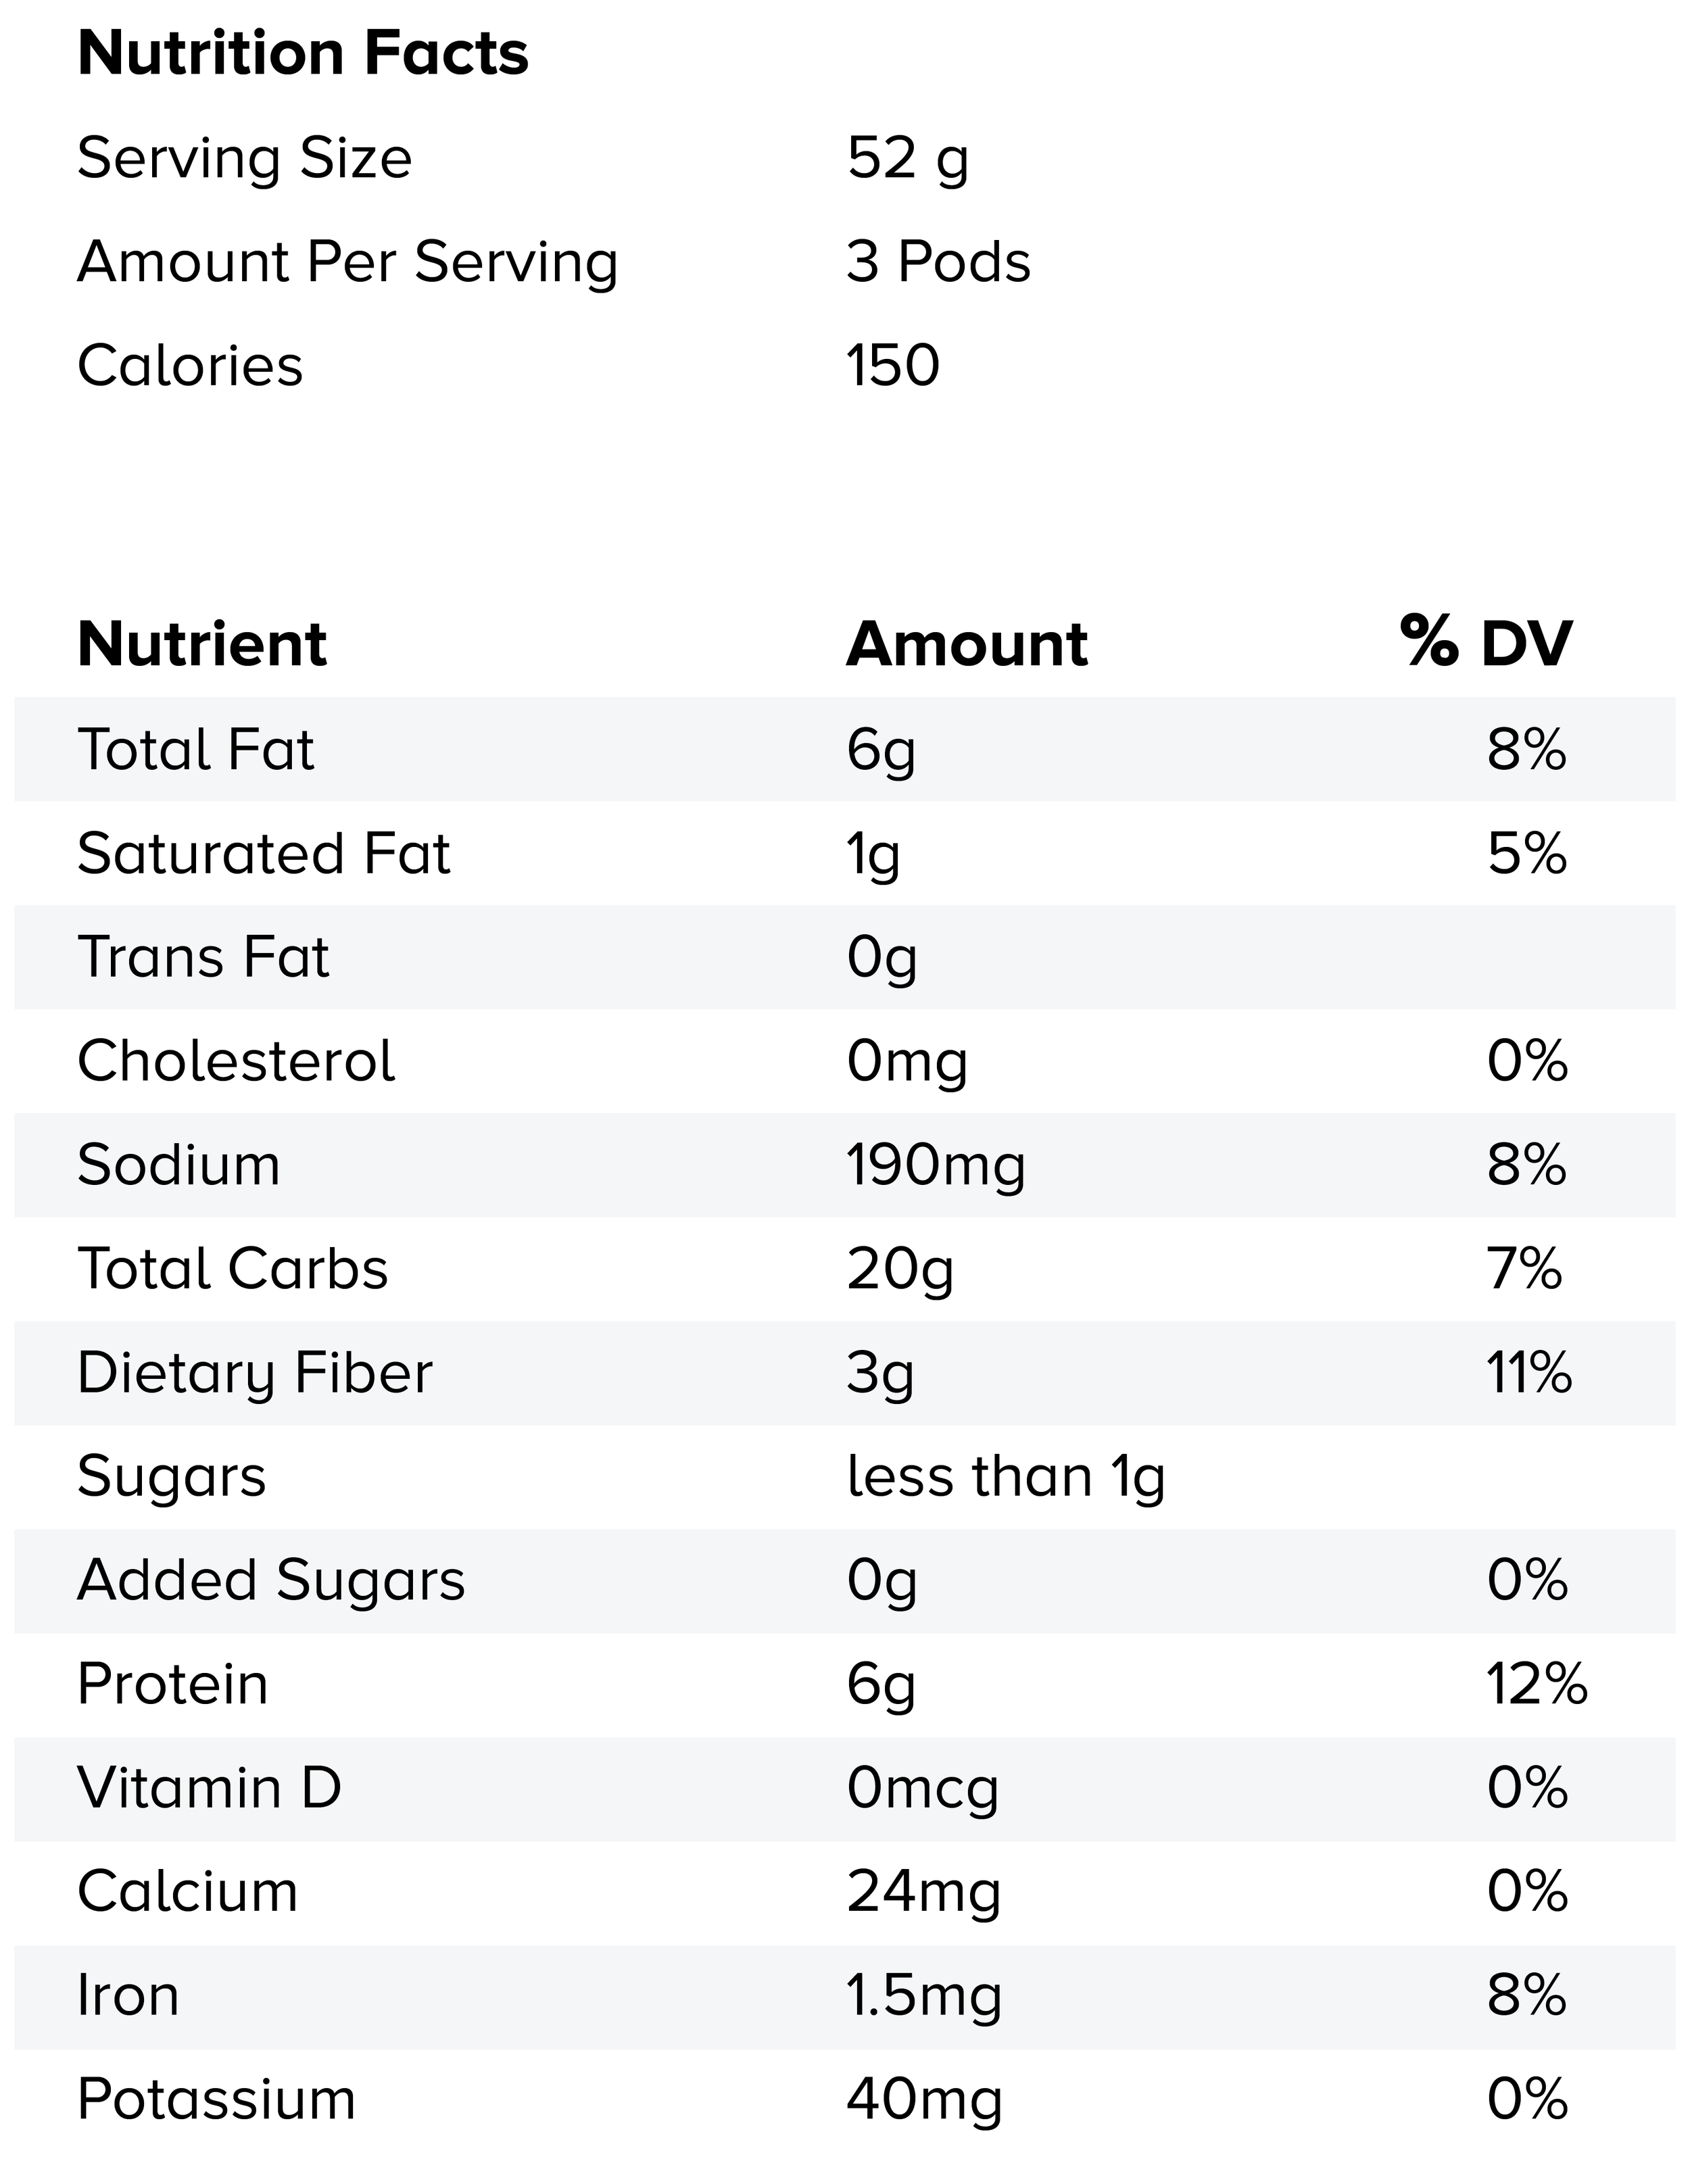 pod nutrition facts web 3-13-18-02.png